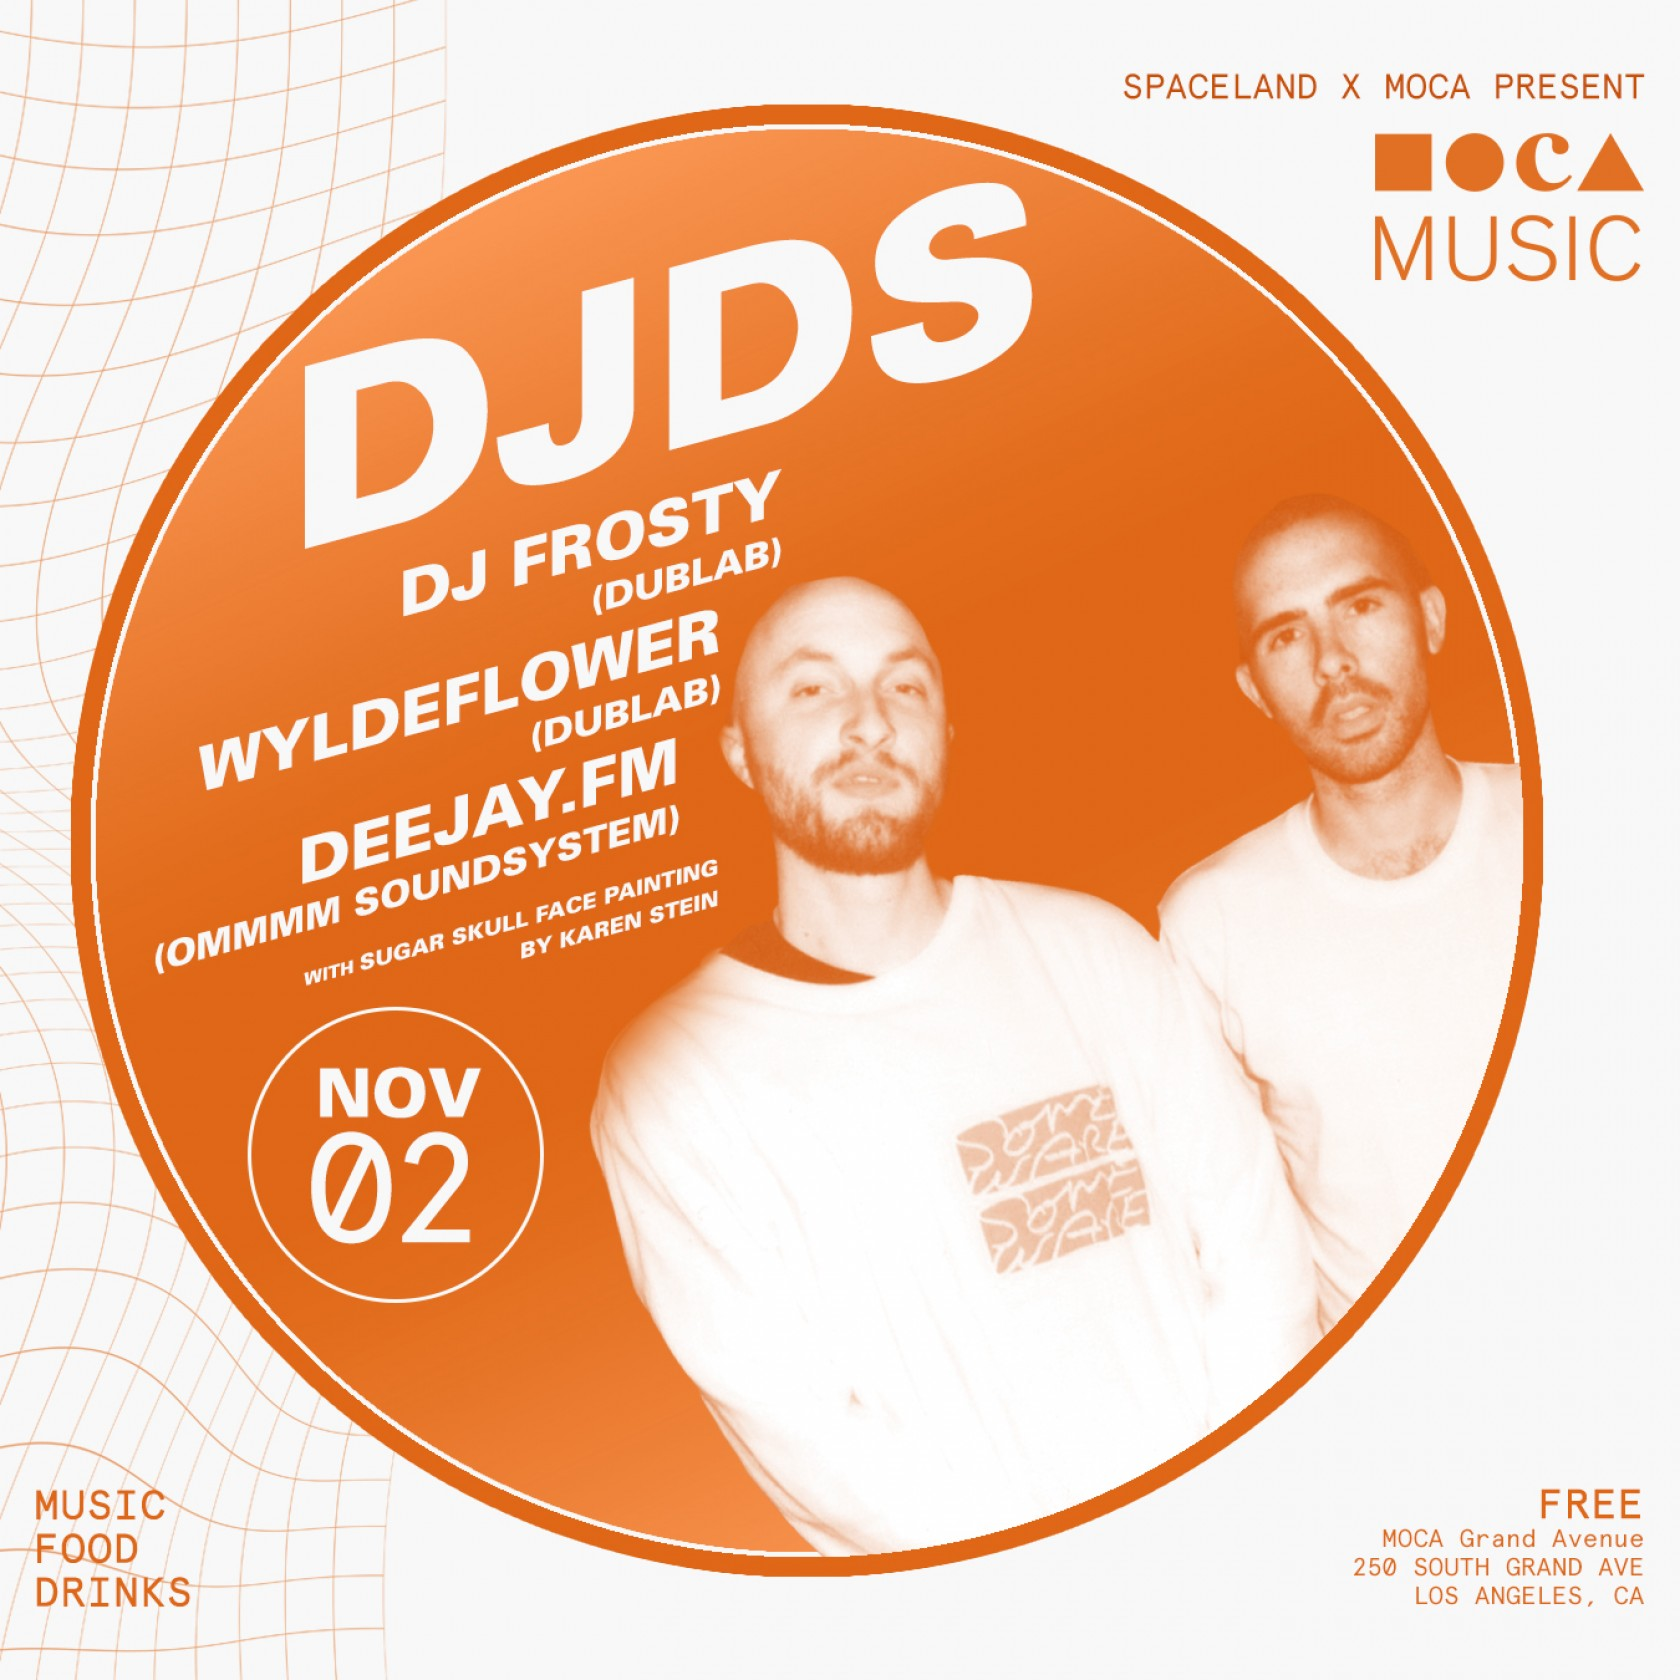 MOCA Music: DJDS, DJ Frosty, WILDFLOWER, and Deejay.fm​